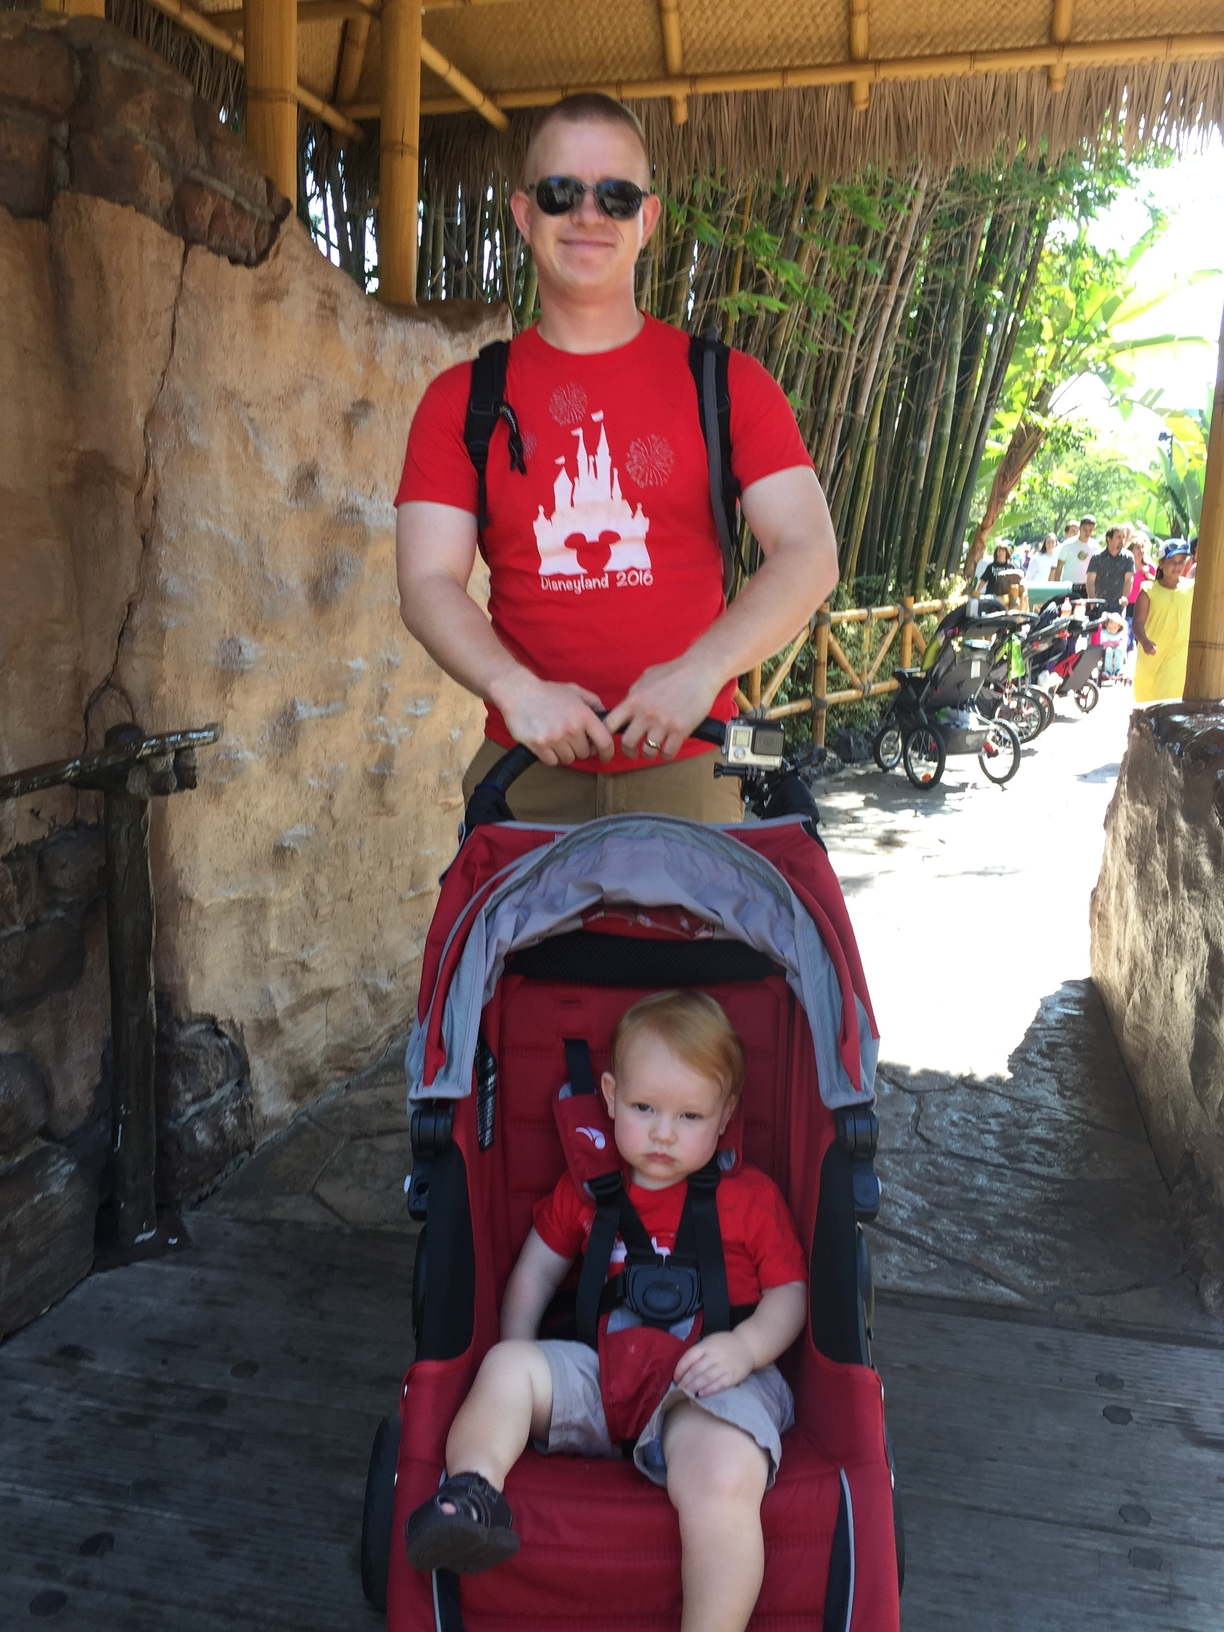 Enjoy exploring Disneyland with your toddler | PassPorter.com